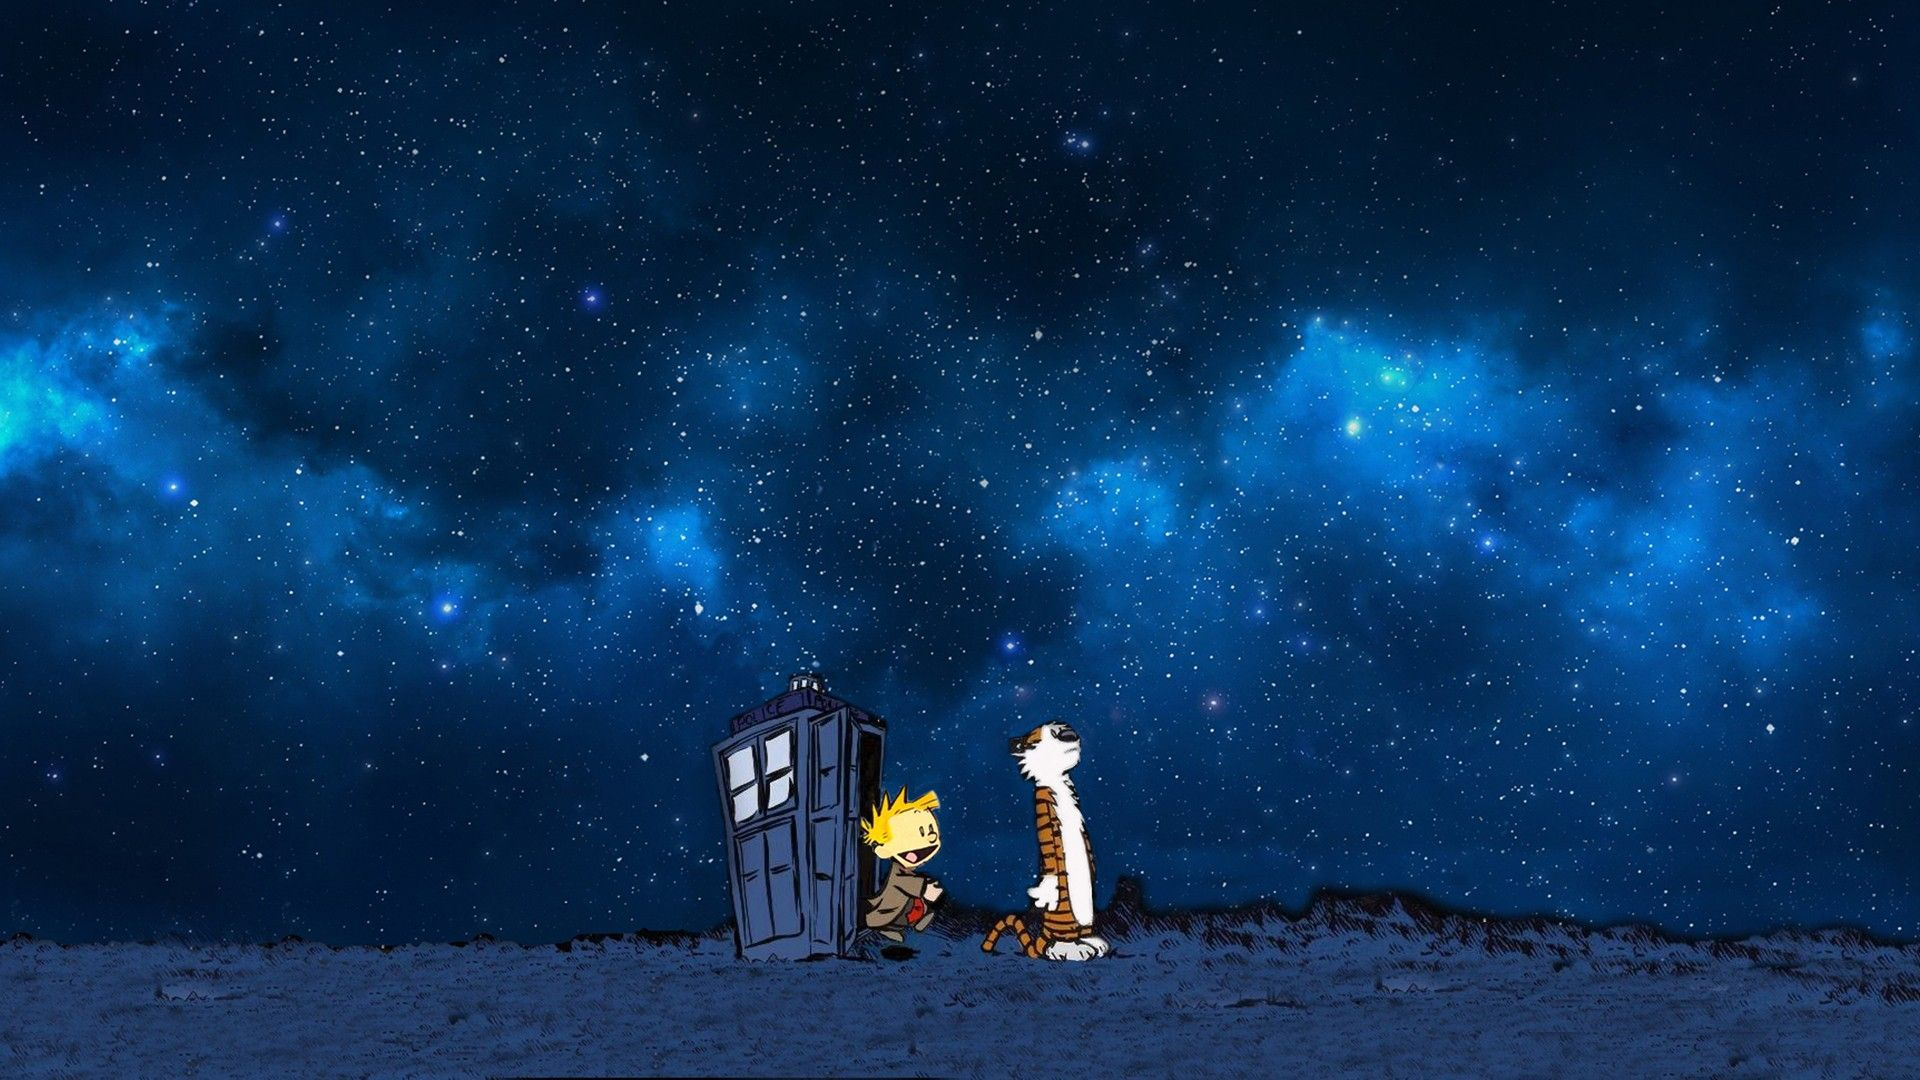 If You Need A Wallpaper Of Calvin And Hobbes Using The Tardis I Ve Got Good News Calvin And Hobbes Calvin And Hobbes Wallpaper Geeky Art